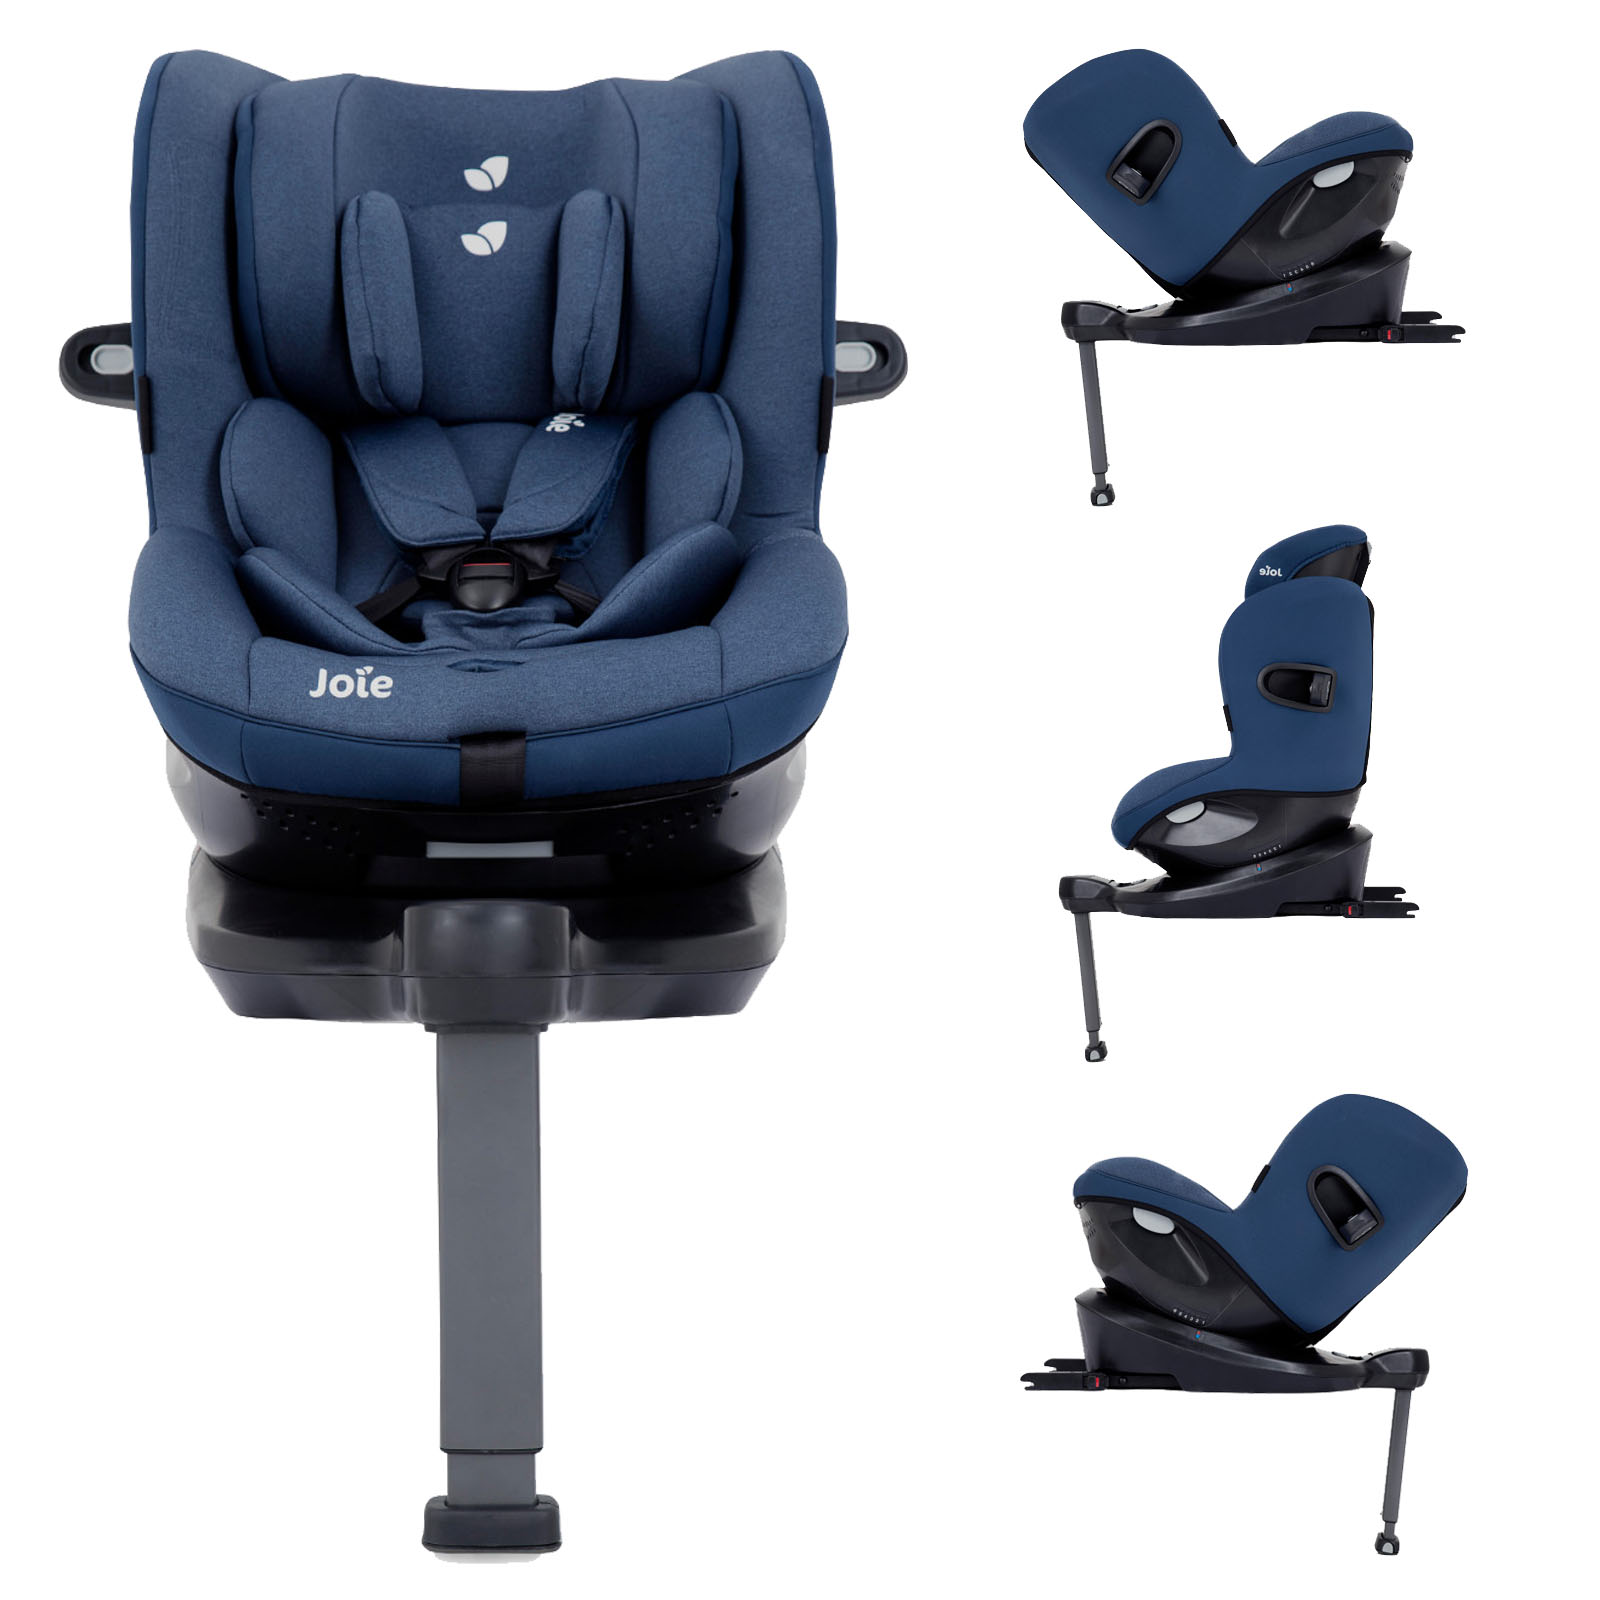 Joie Baby Head Office Joie I Spin 360 Isize Group 1 Car Seat Deep Sea Buy